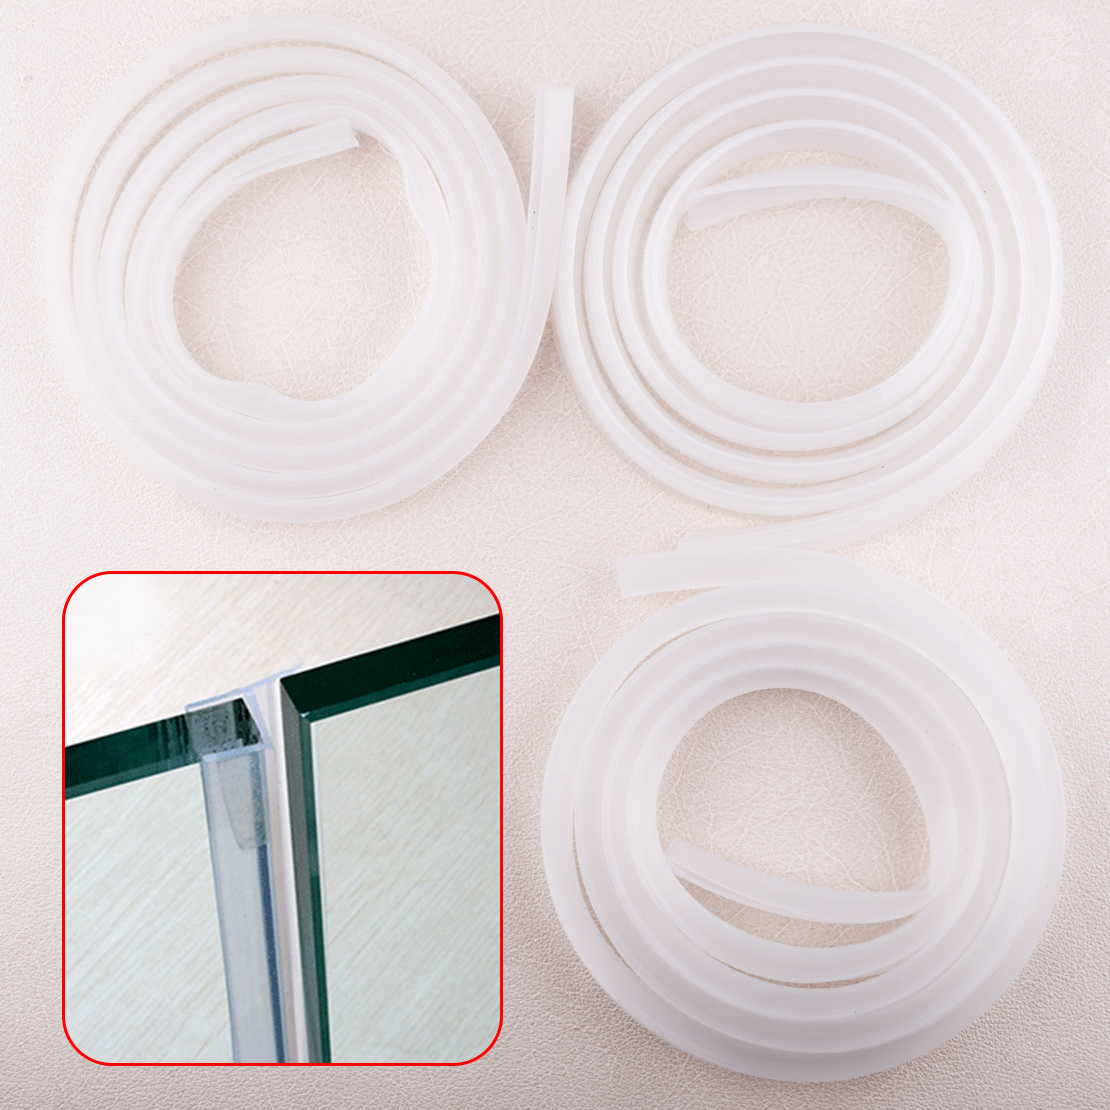 Us 7 34 25 Off Clear 2m Rubber Silicone Bath Shower Room Screen Door Window Seal Strip Gap Curved Flat 0 6cm 1cm 1 2cm In Bathroom Accessories Sets